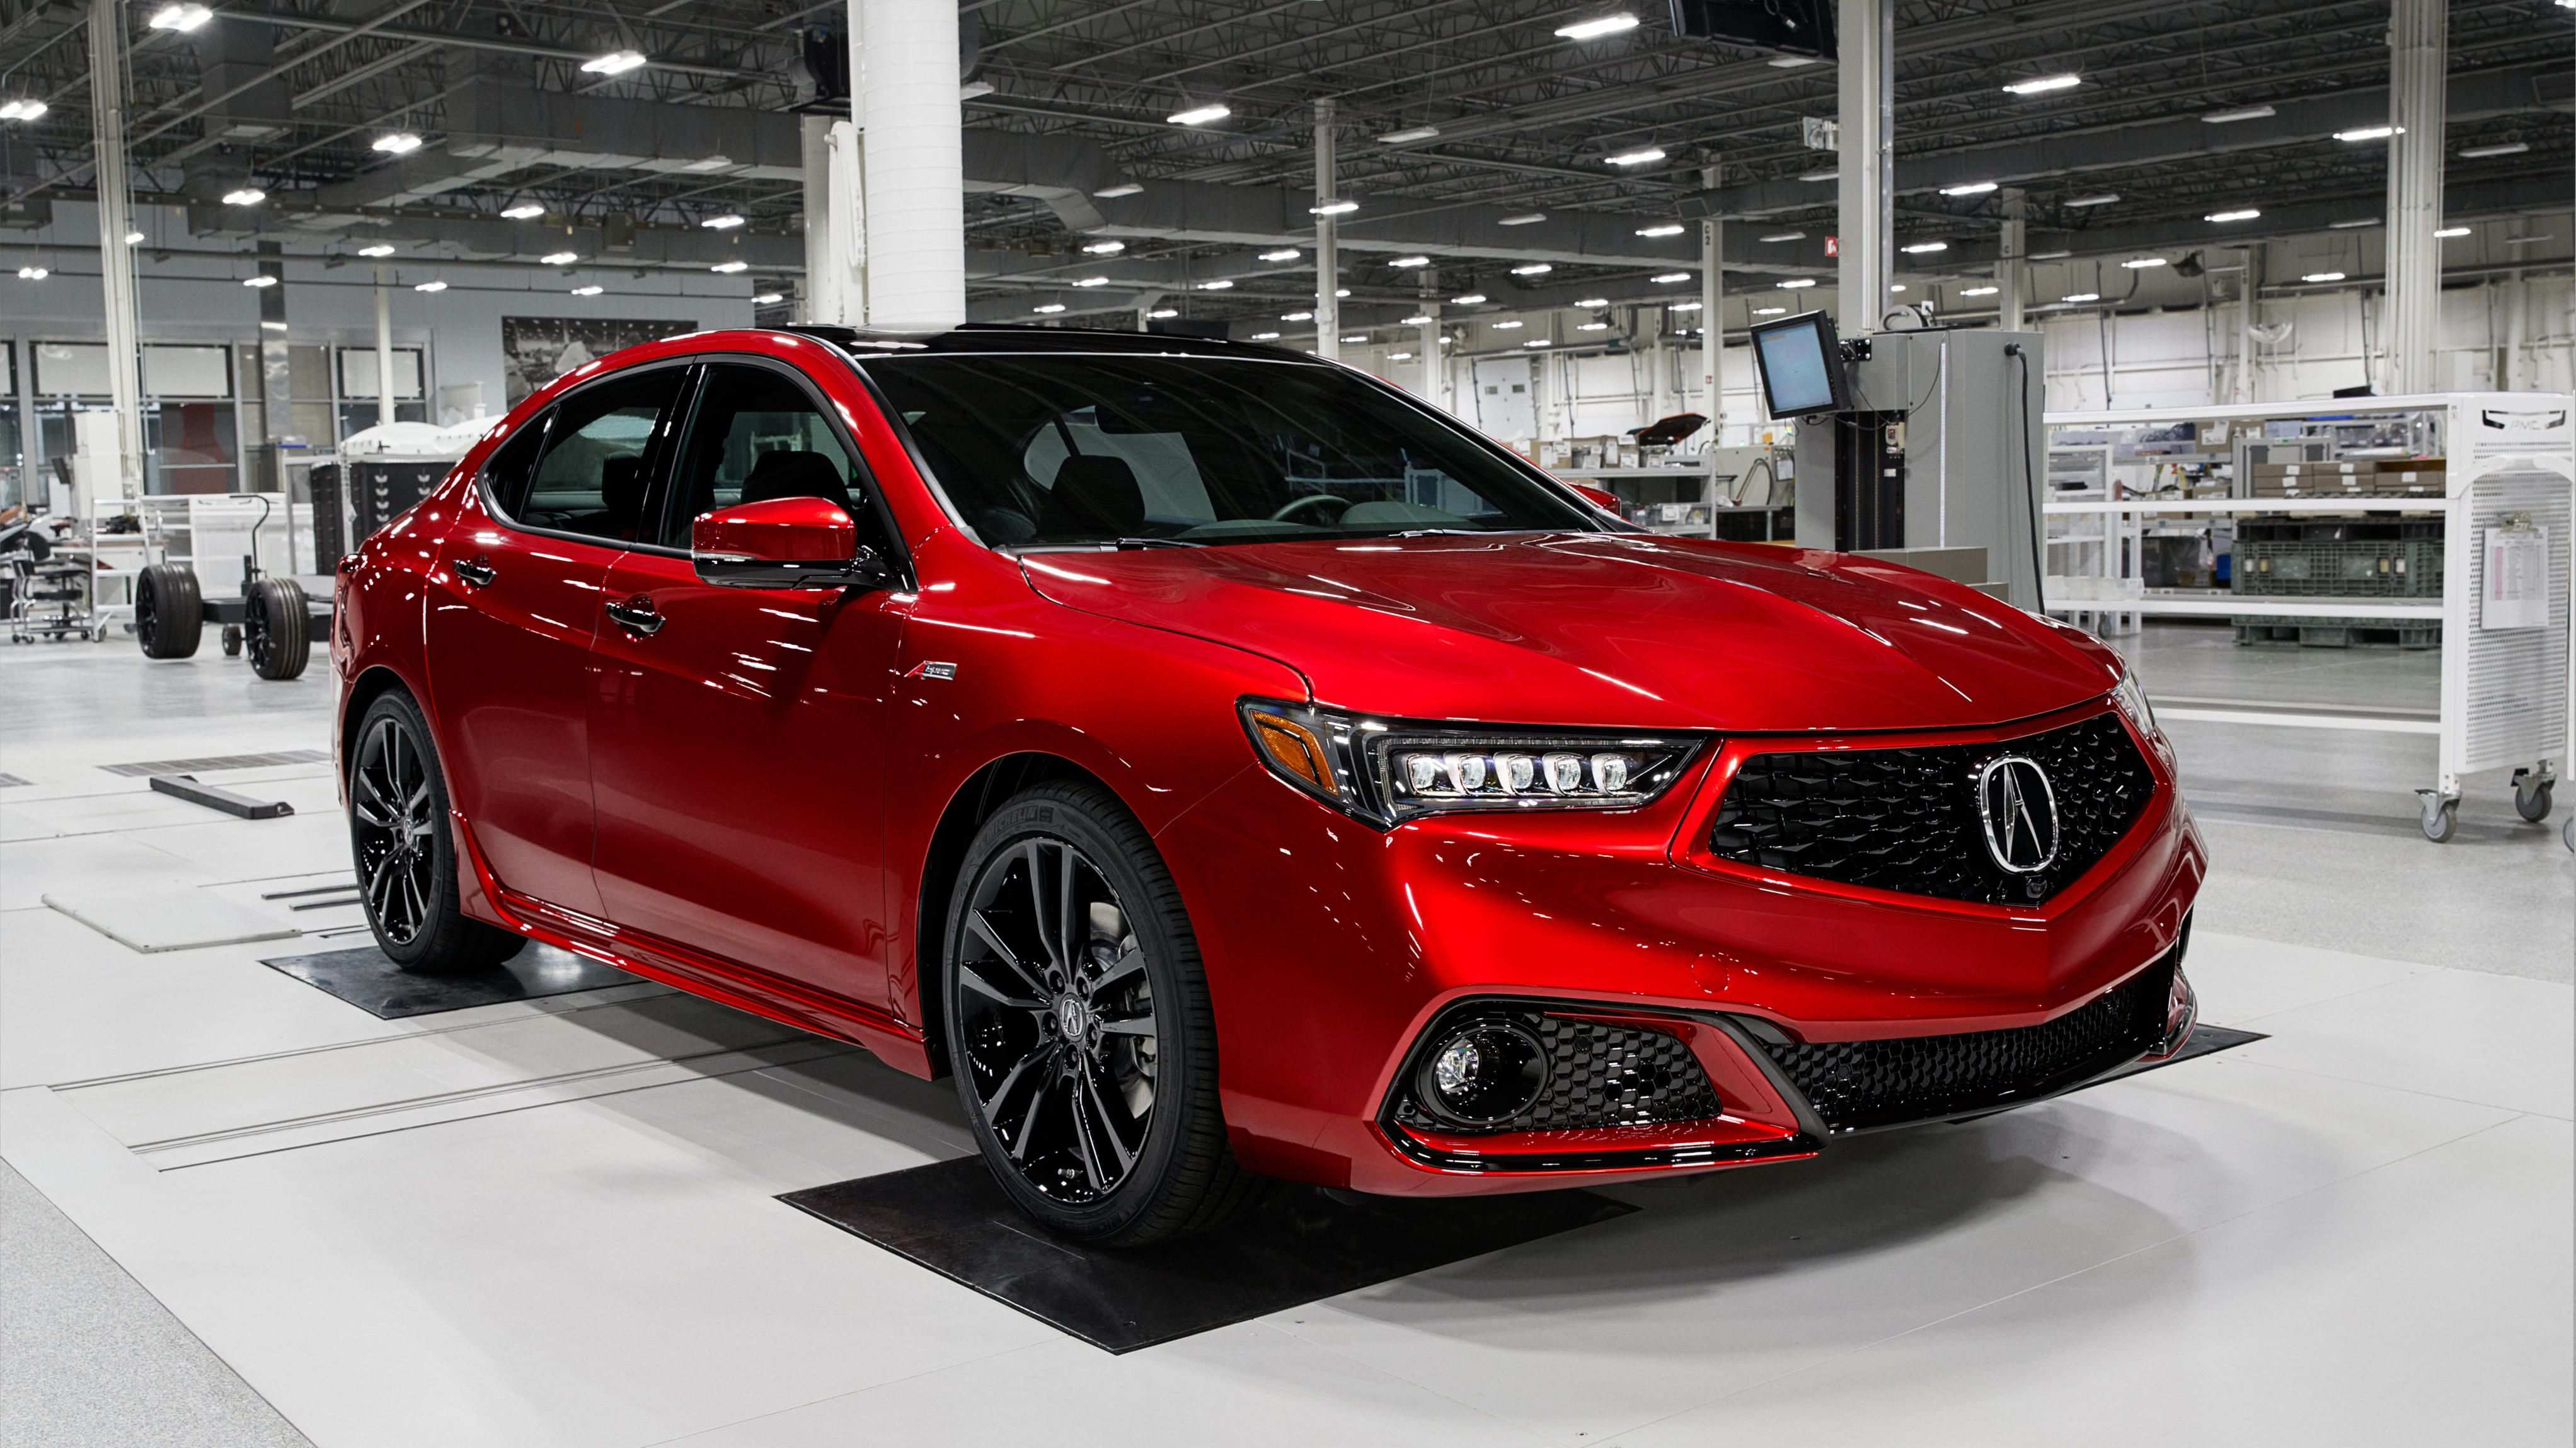 61 Best Acura Tlx 2020 Horsepower Images